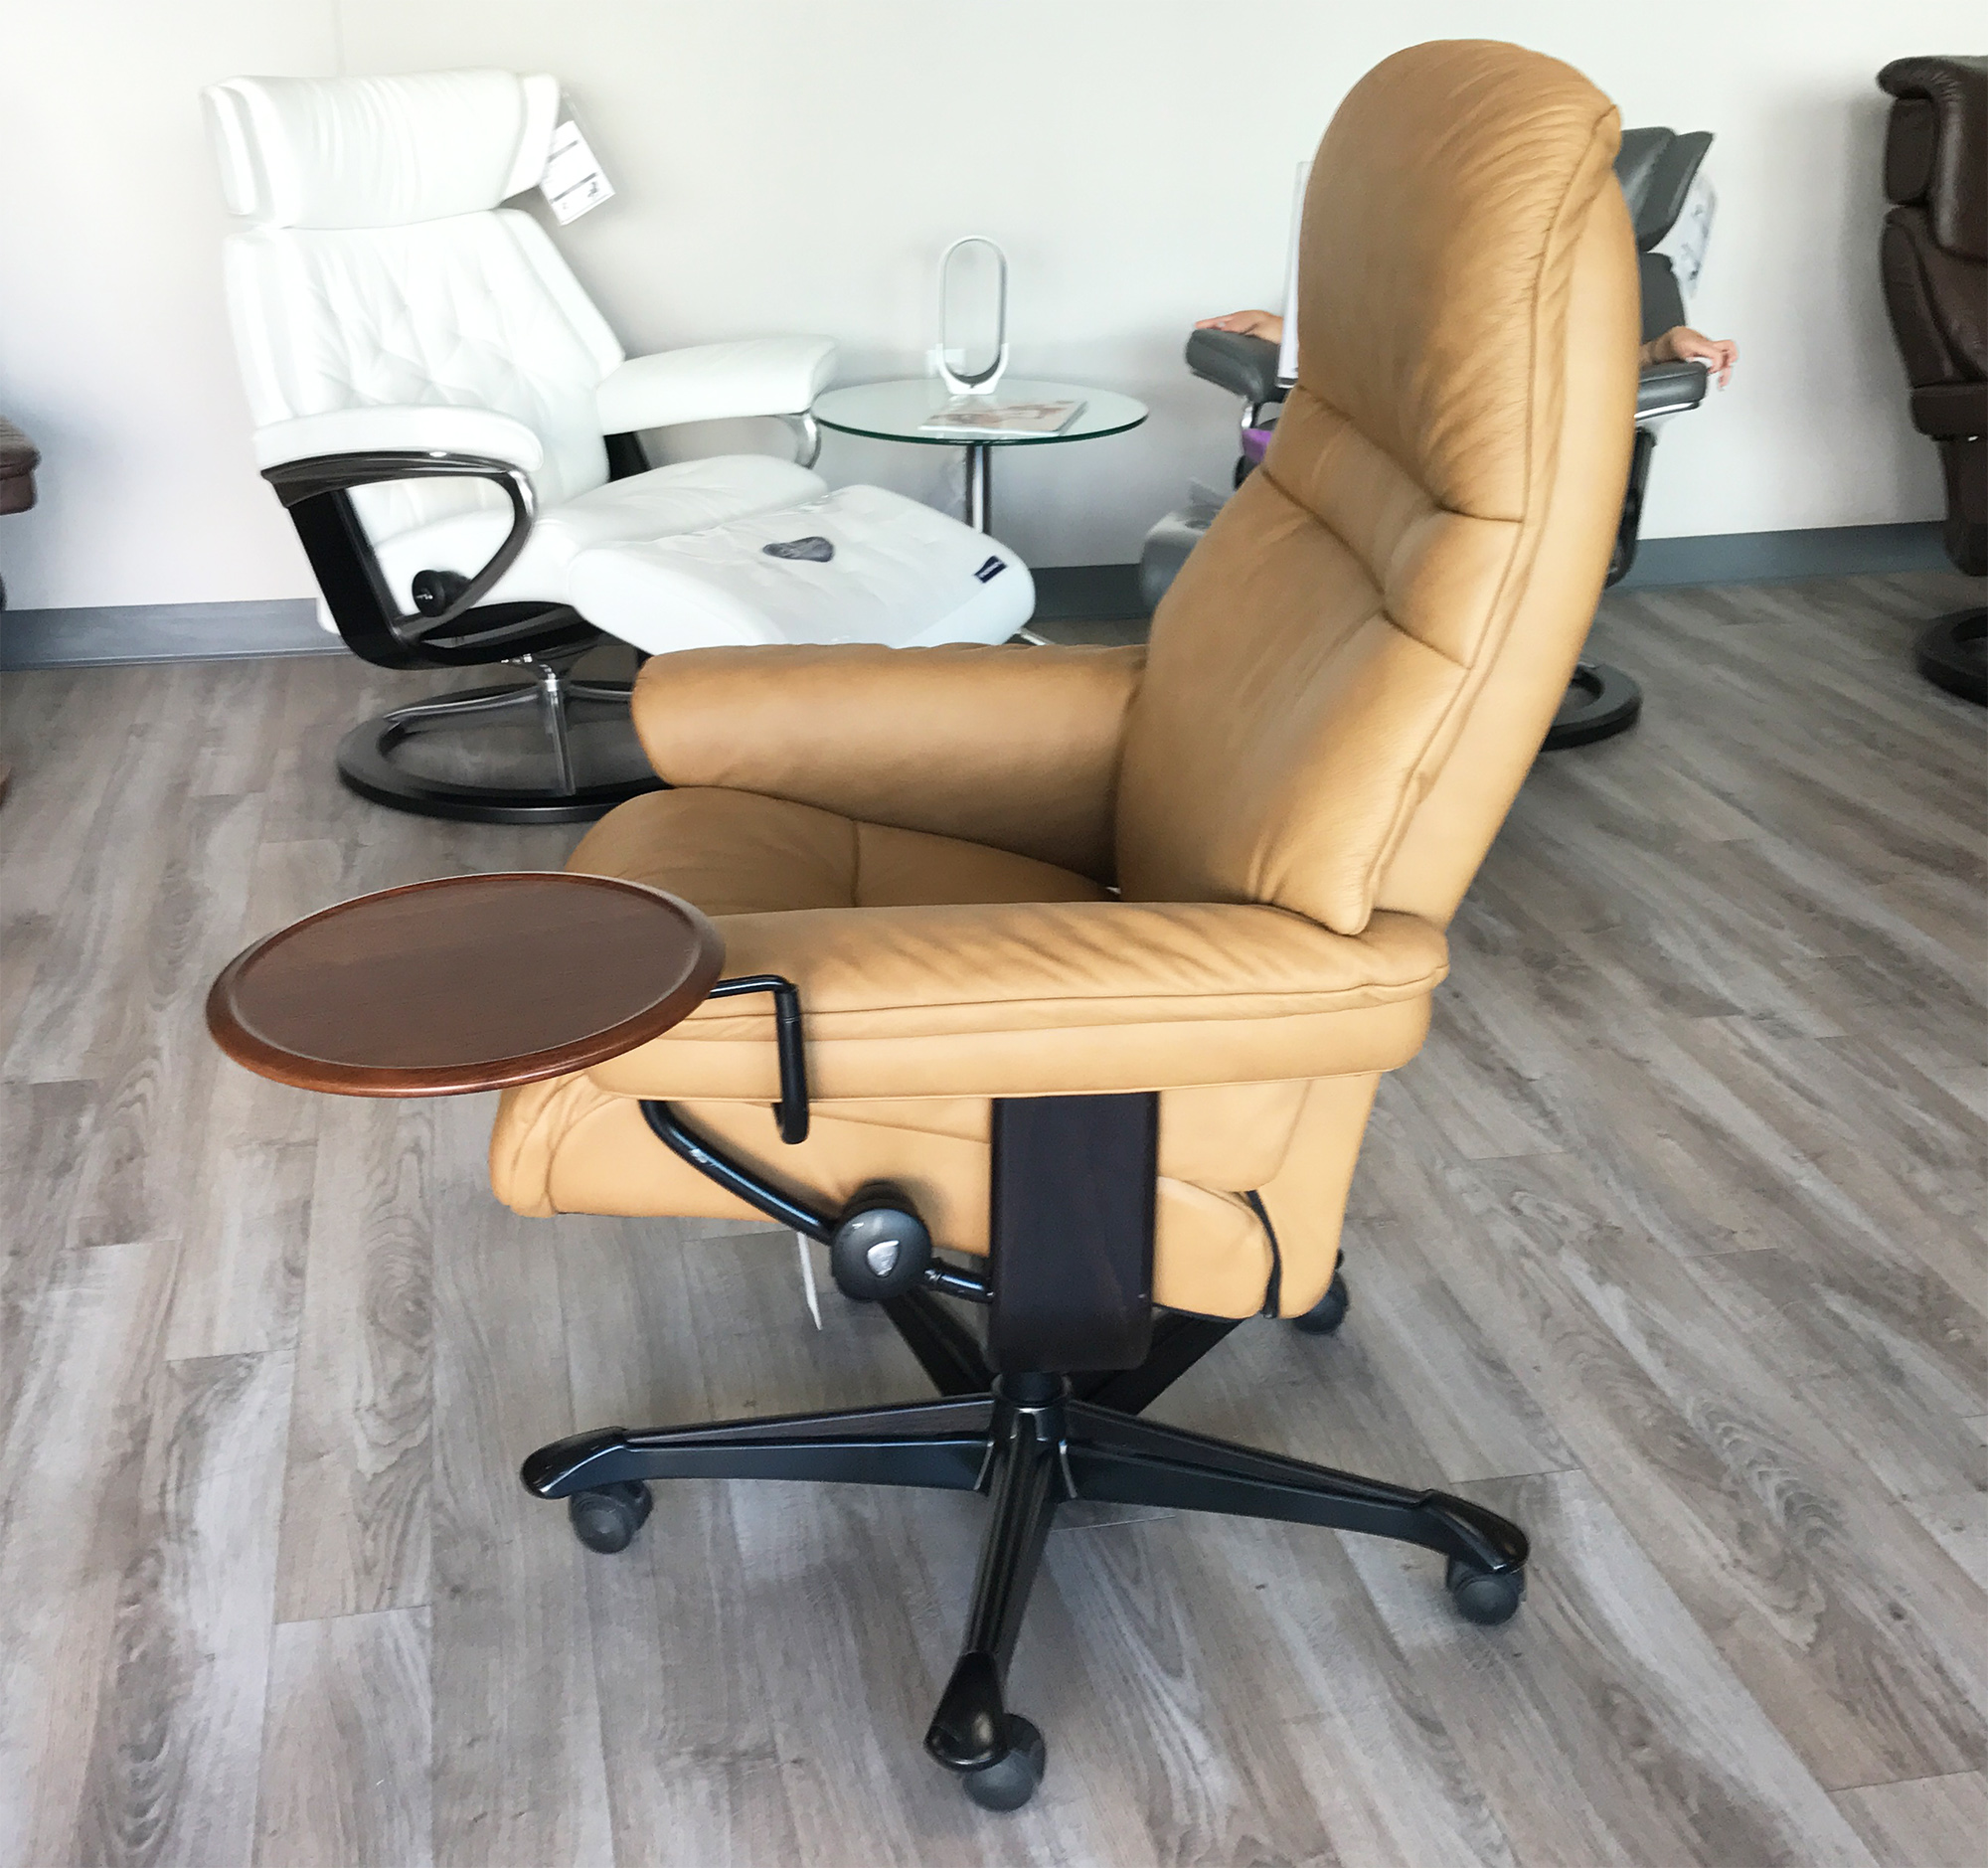 Stressless Video Stressless Sunrise Office Desk Chair Paloma Taupe Leather By Ekornes